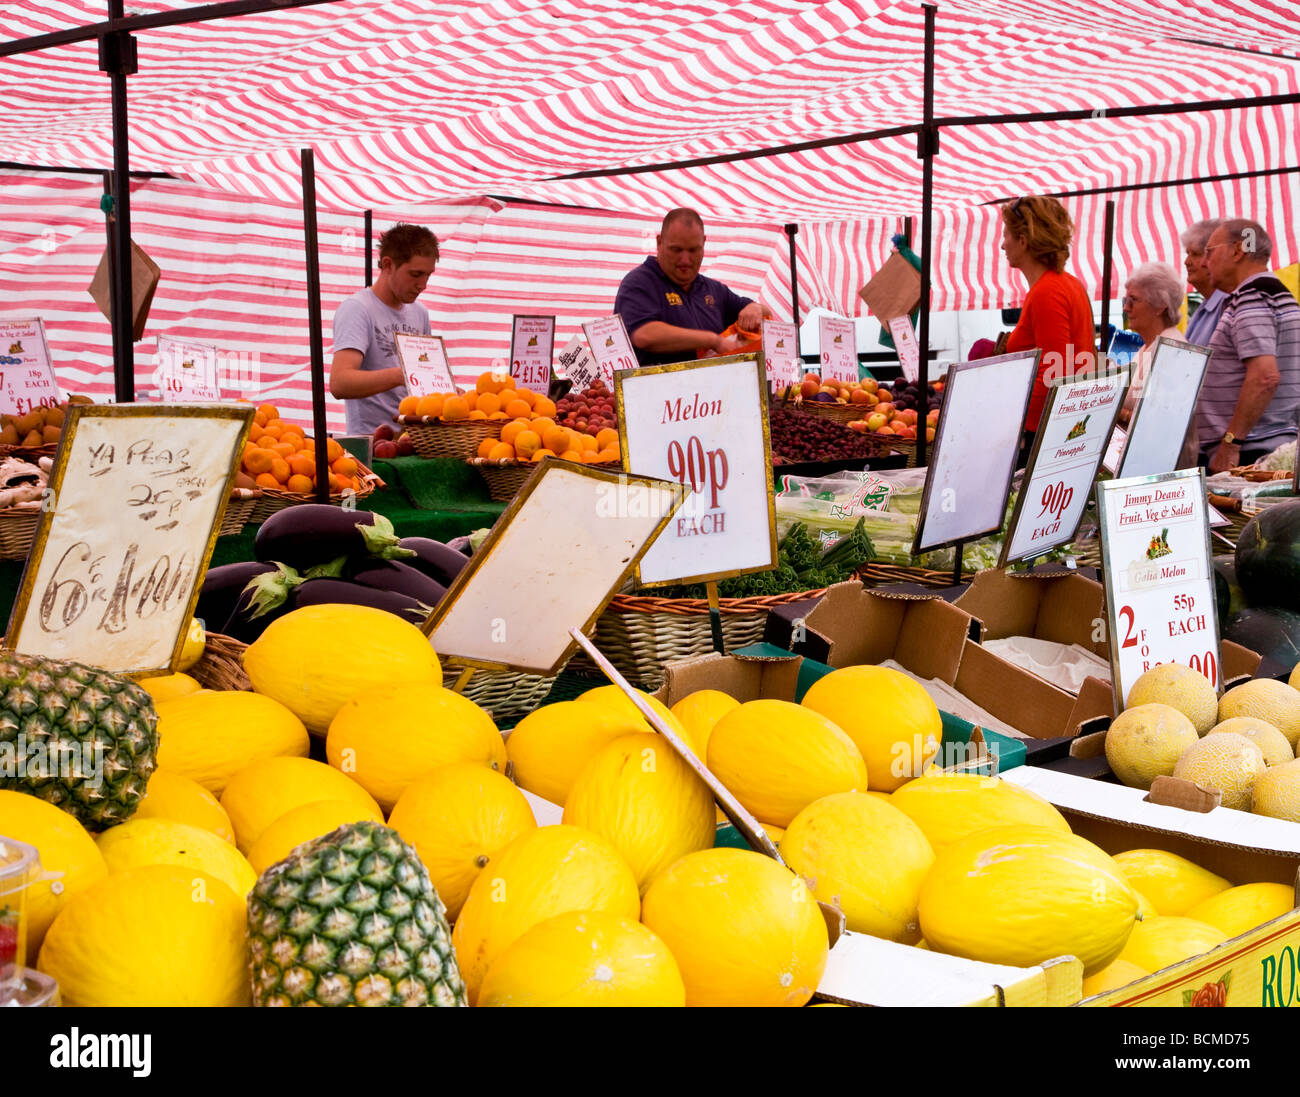 A fruit stall at the Thursday famer s market in the typical English market town of Devizes Wiltshire England UK - Stock Image